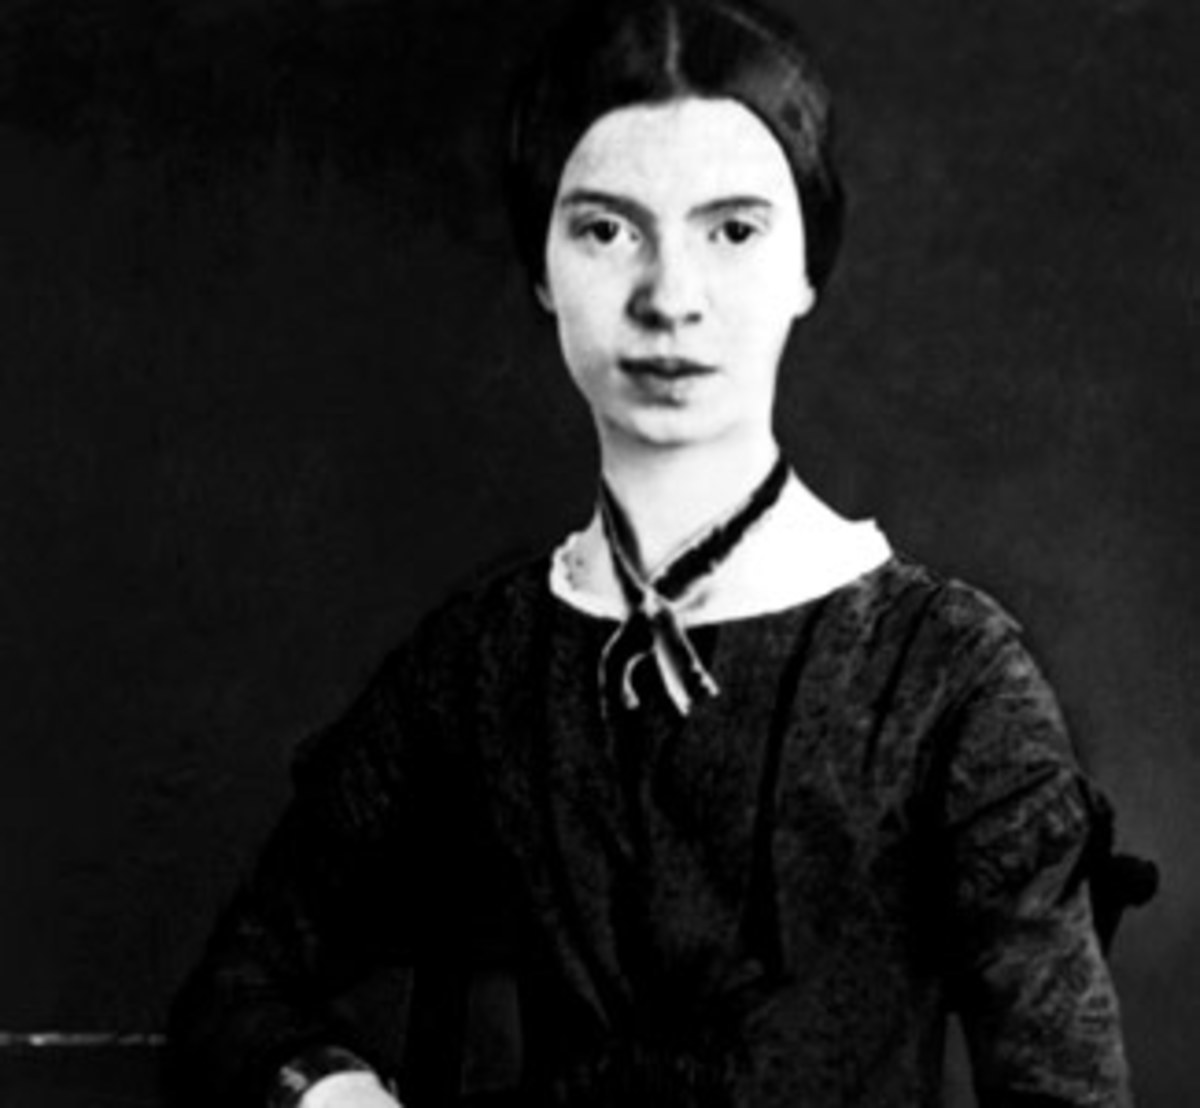 The Romanticist's Soul: a Peek at Emily Dickinson